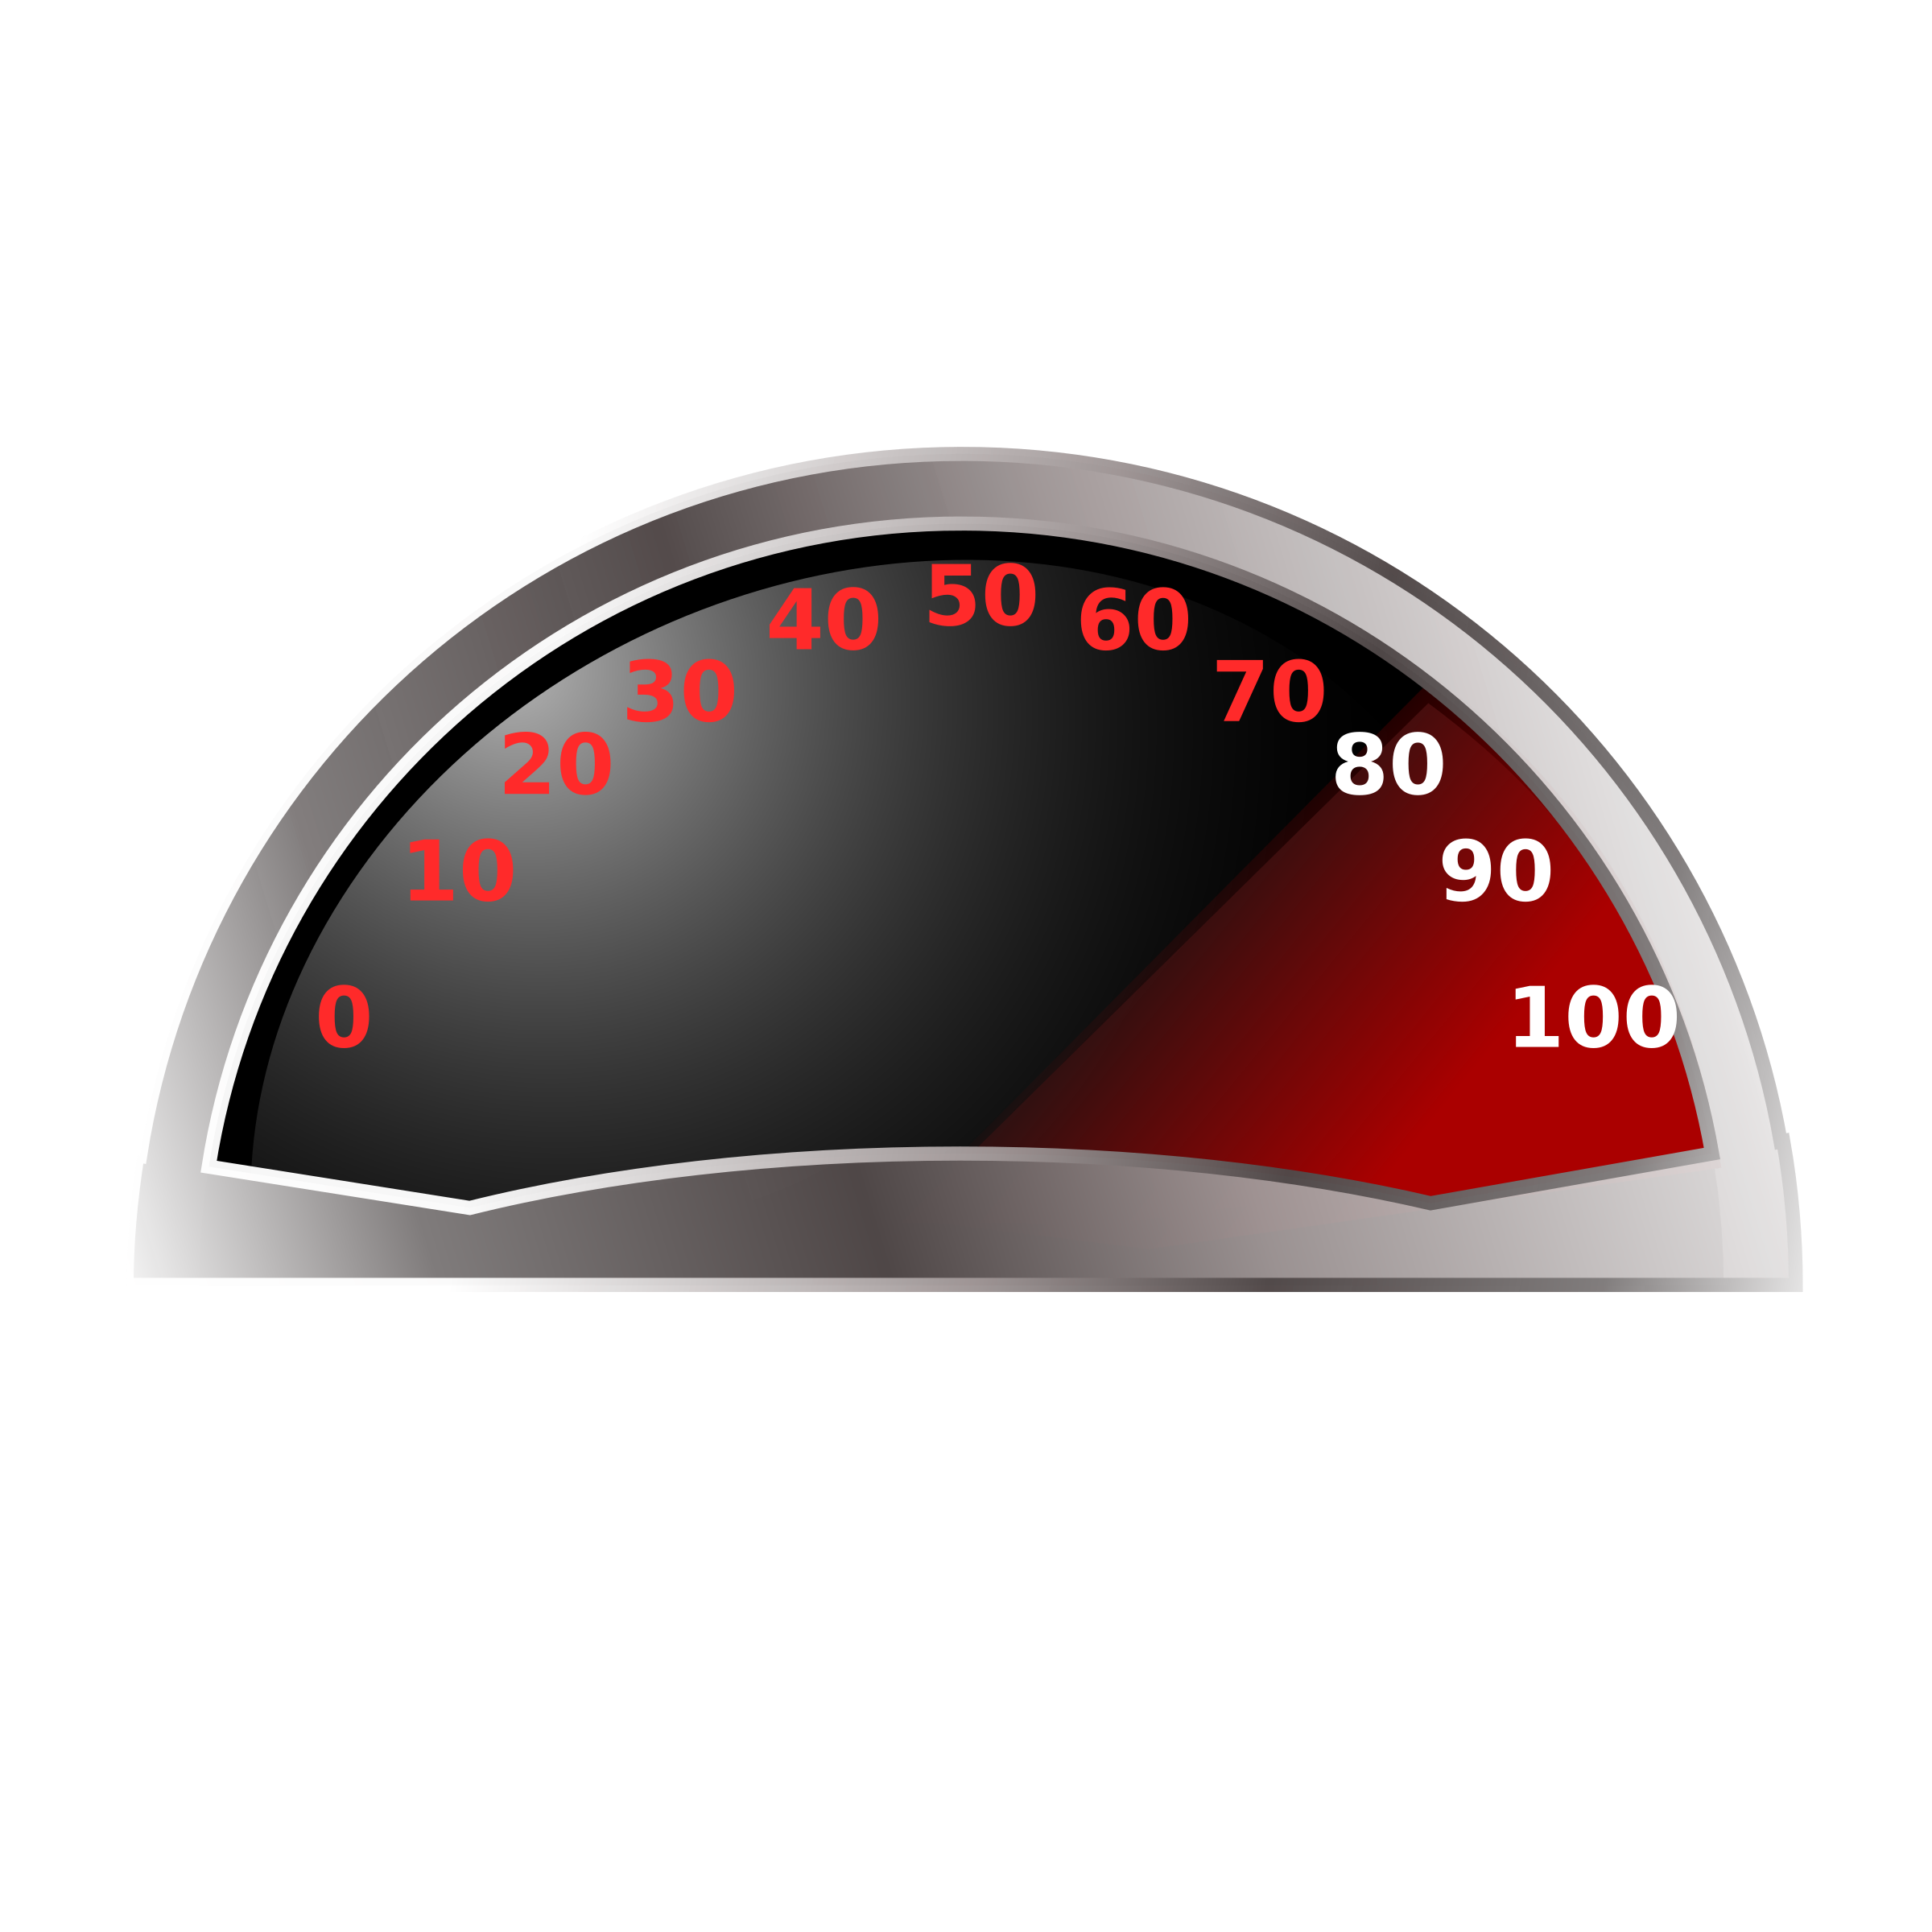 Car gauge clipart svg royalty free stock Clipart - Gauge svg royalty free stock